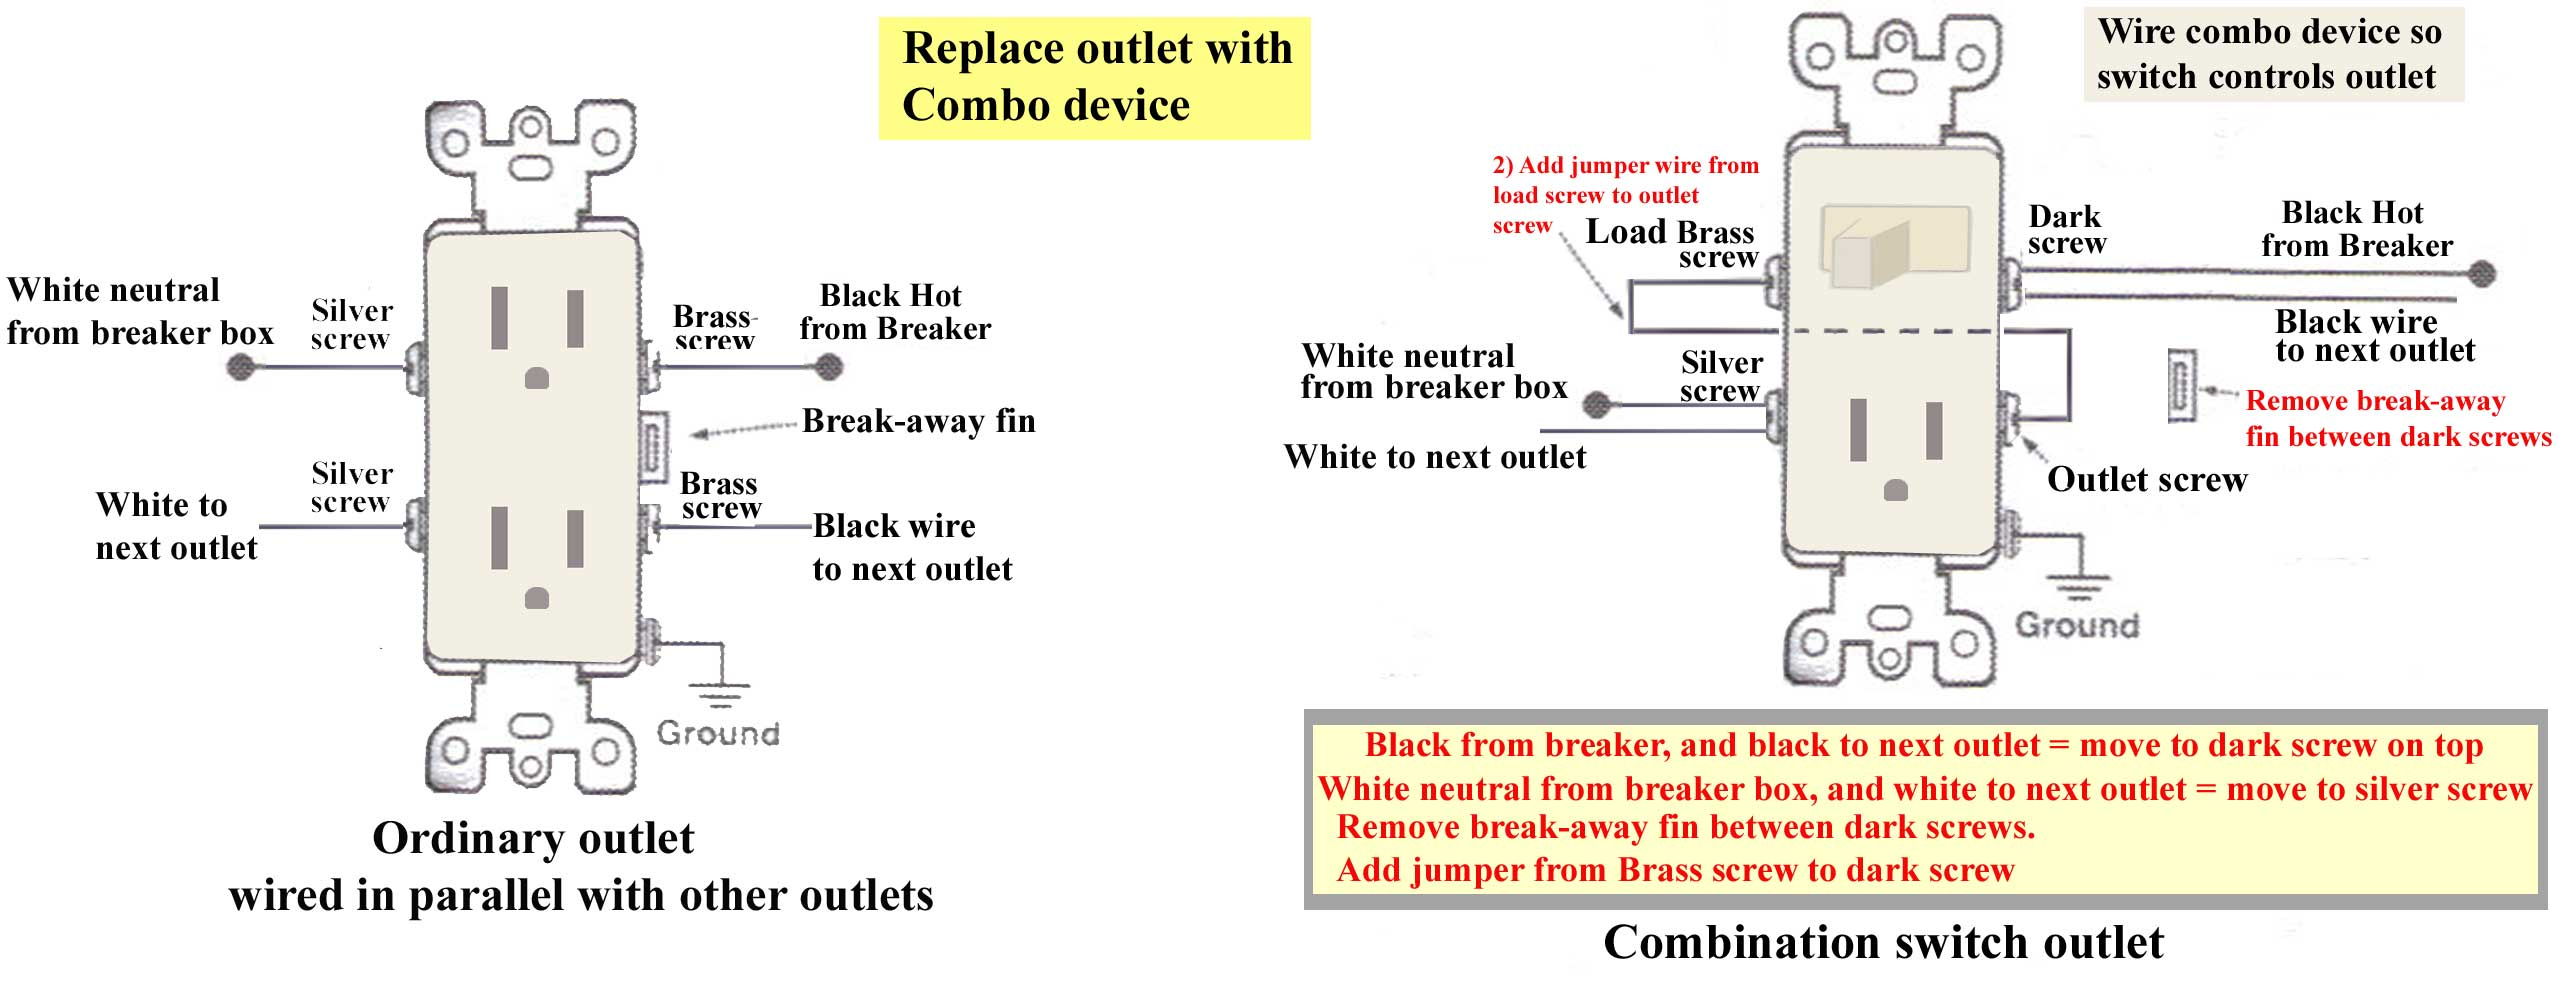 Combo switch replaces outlet 900 how to replace outlet with combo switch leviton outlet wiring diagram at mifinder.co